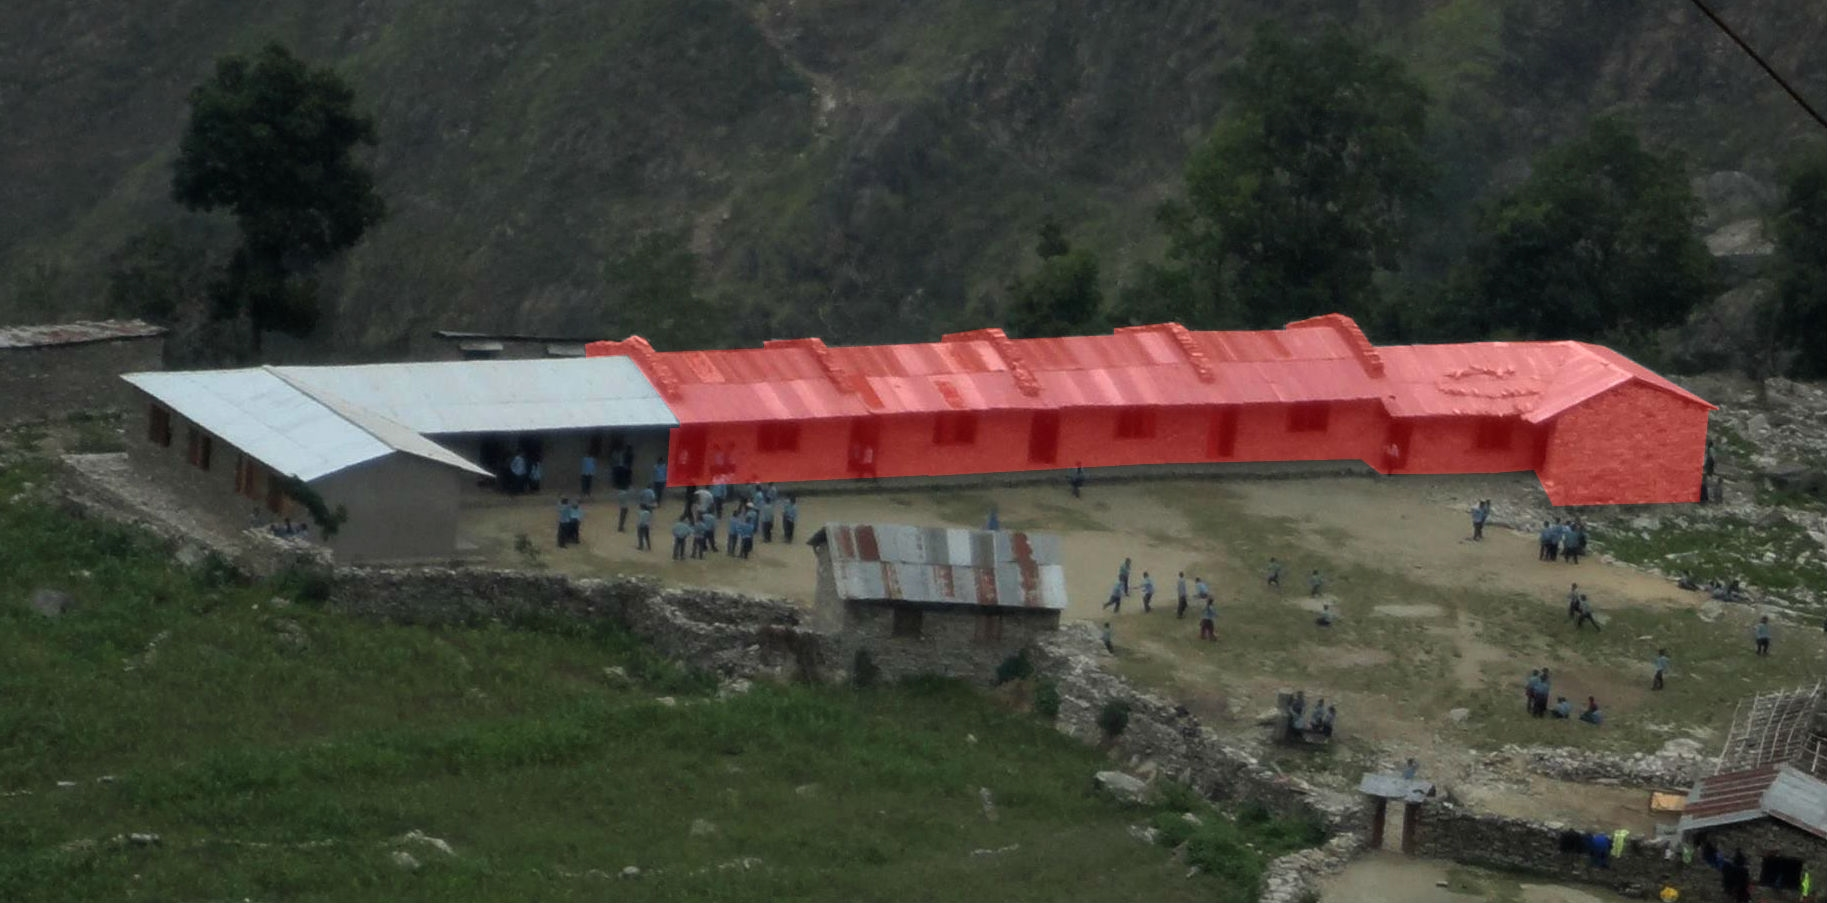 This is how the Gandagi Lower Secondary School appeared prior to the earthquake. The area highlighted in red fell to the ground forcing all 350 students to learn out of only a few rooms. Save Rural Nepal will rebuild at least four rooms starting winter 2015.